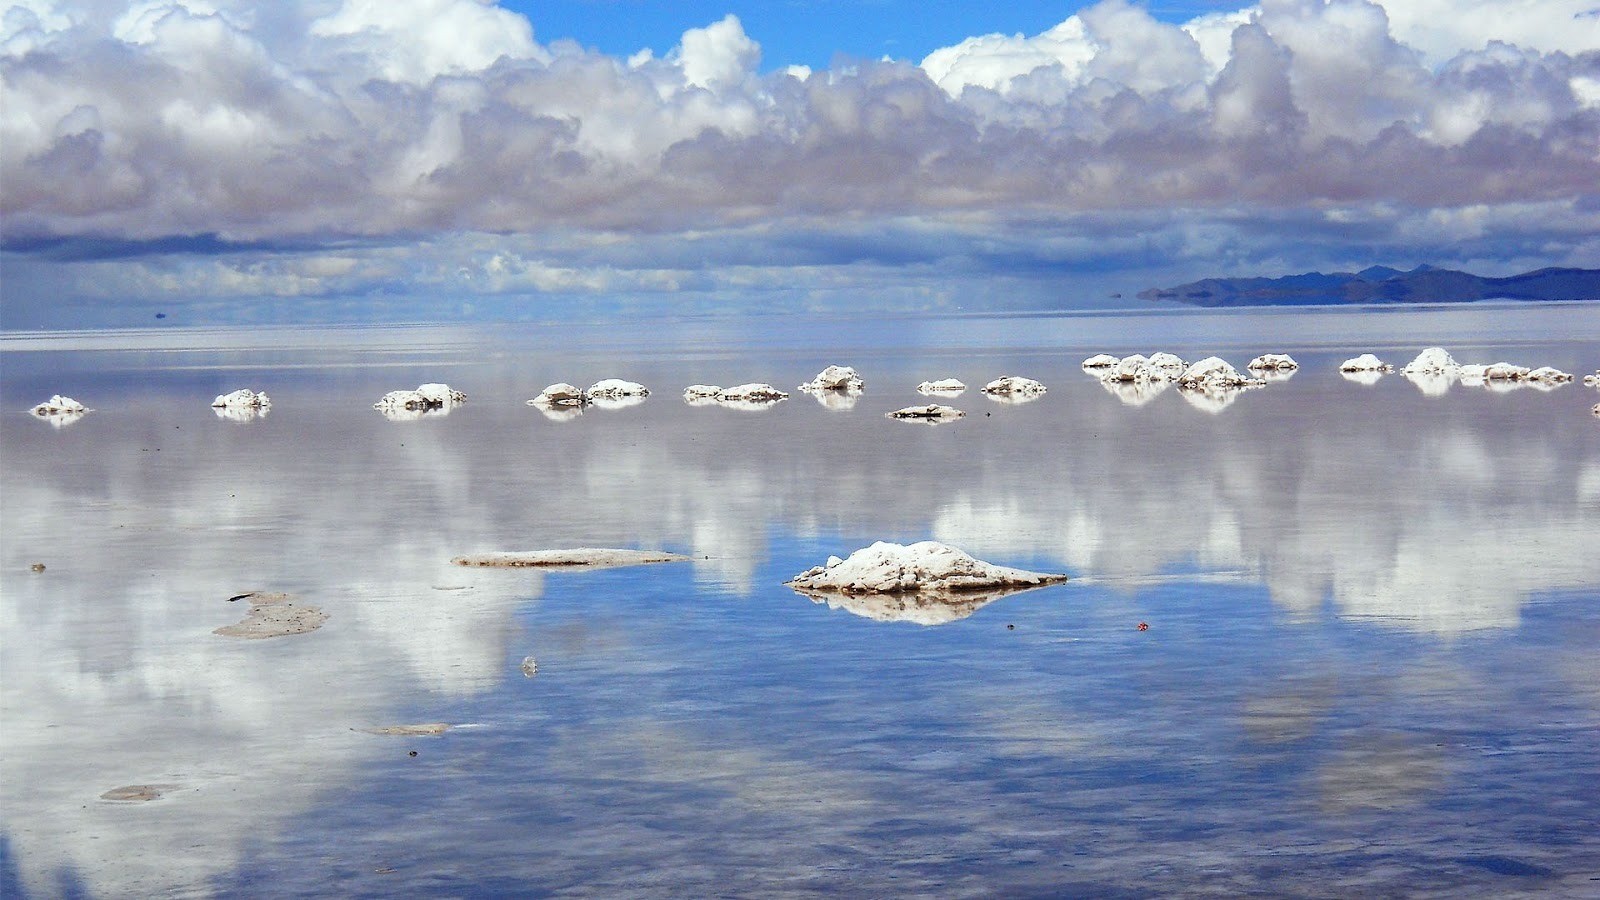 The Salt Flat Salar de Uyuni Wallpapers High Quality Download 1600x900